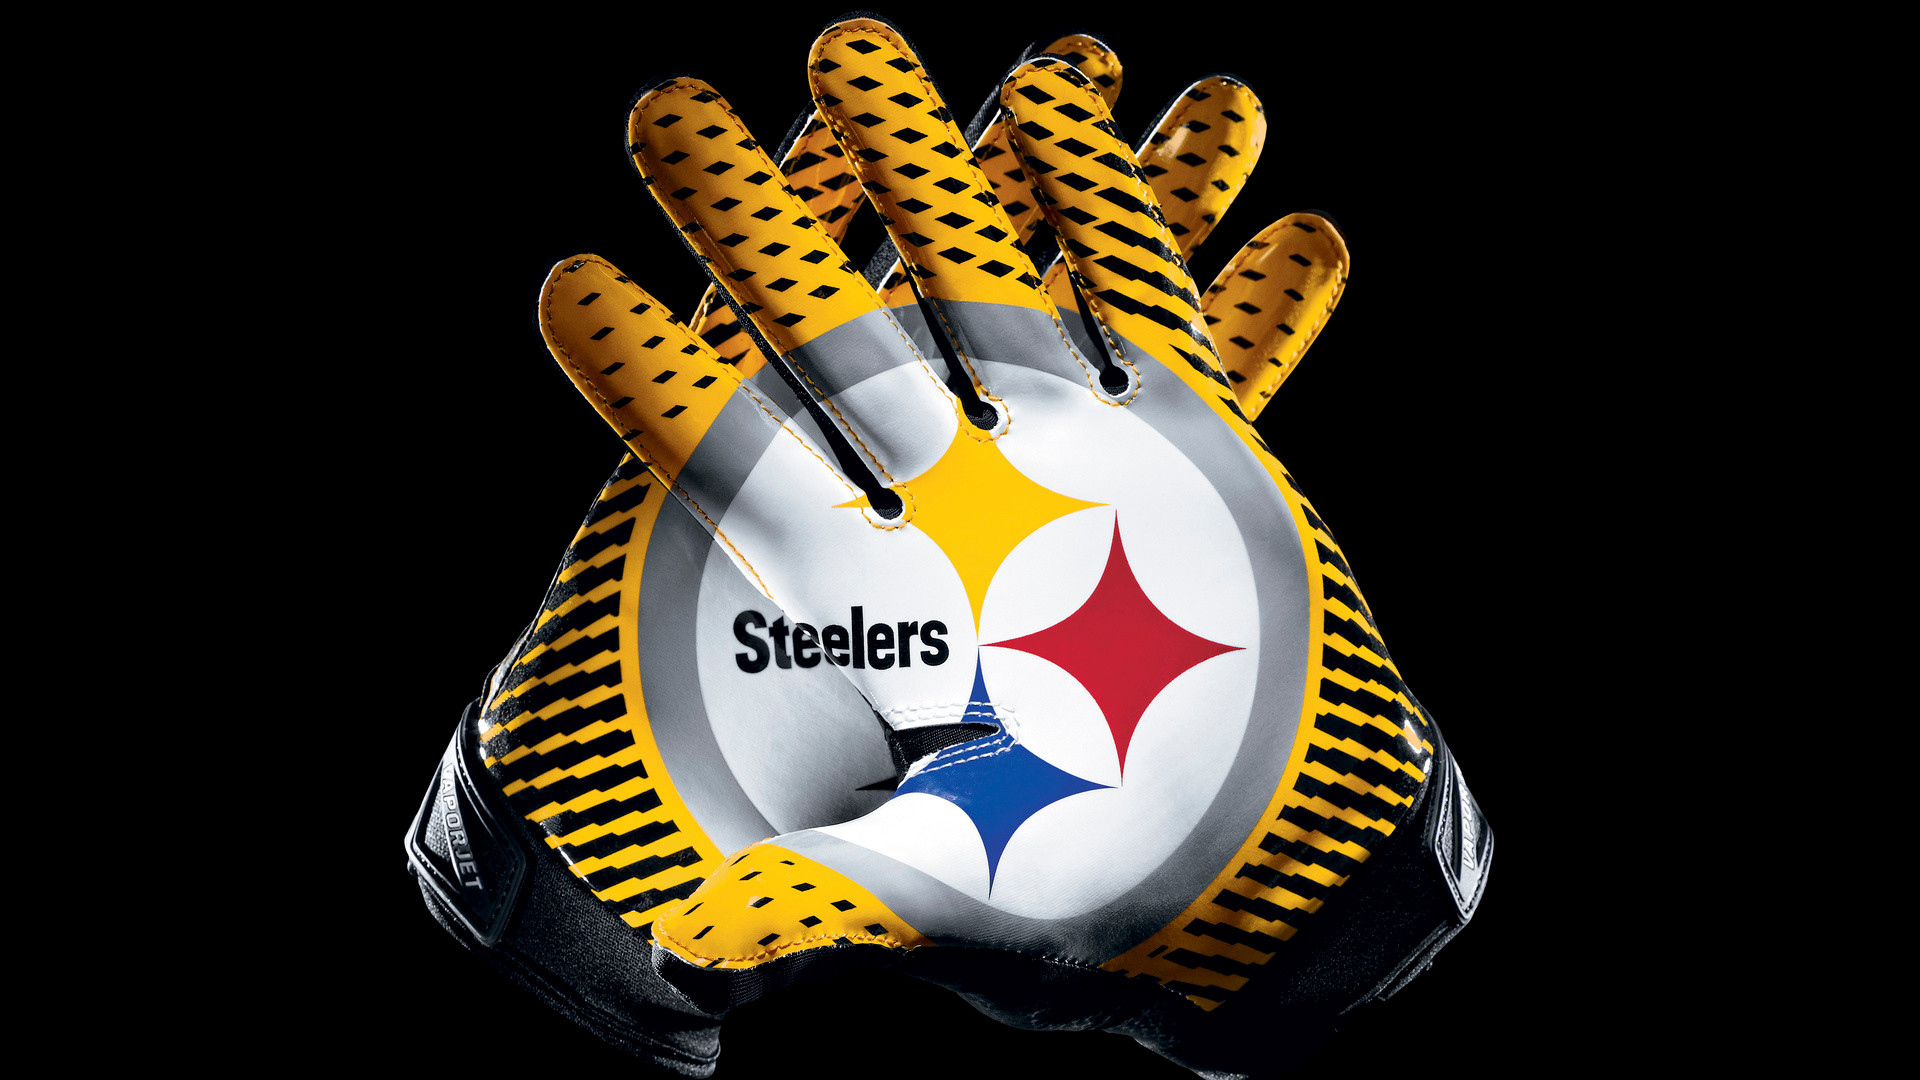 Steelers wallpaper 2018 68 pictures pittsburgh voltagebd Images